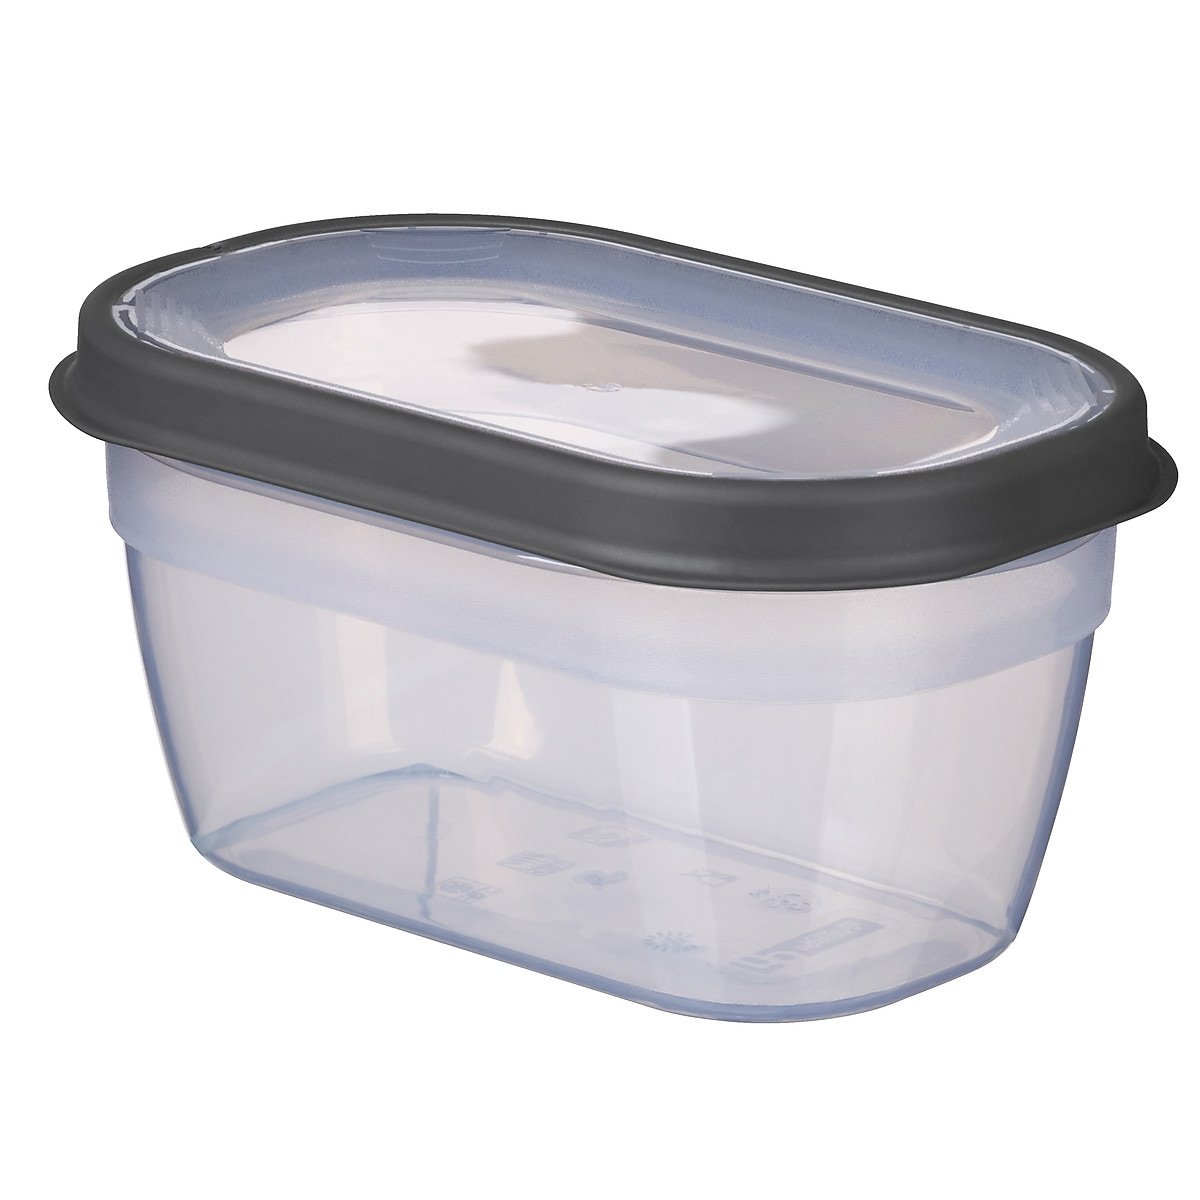 0.5 L Food Container